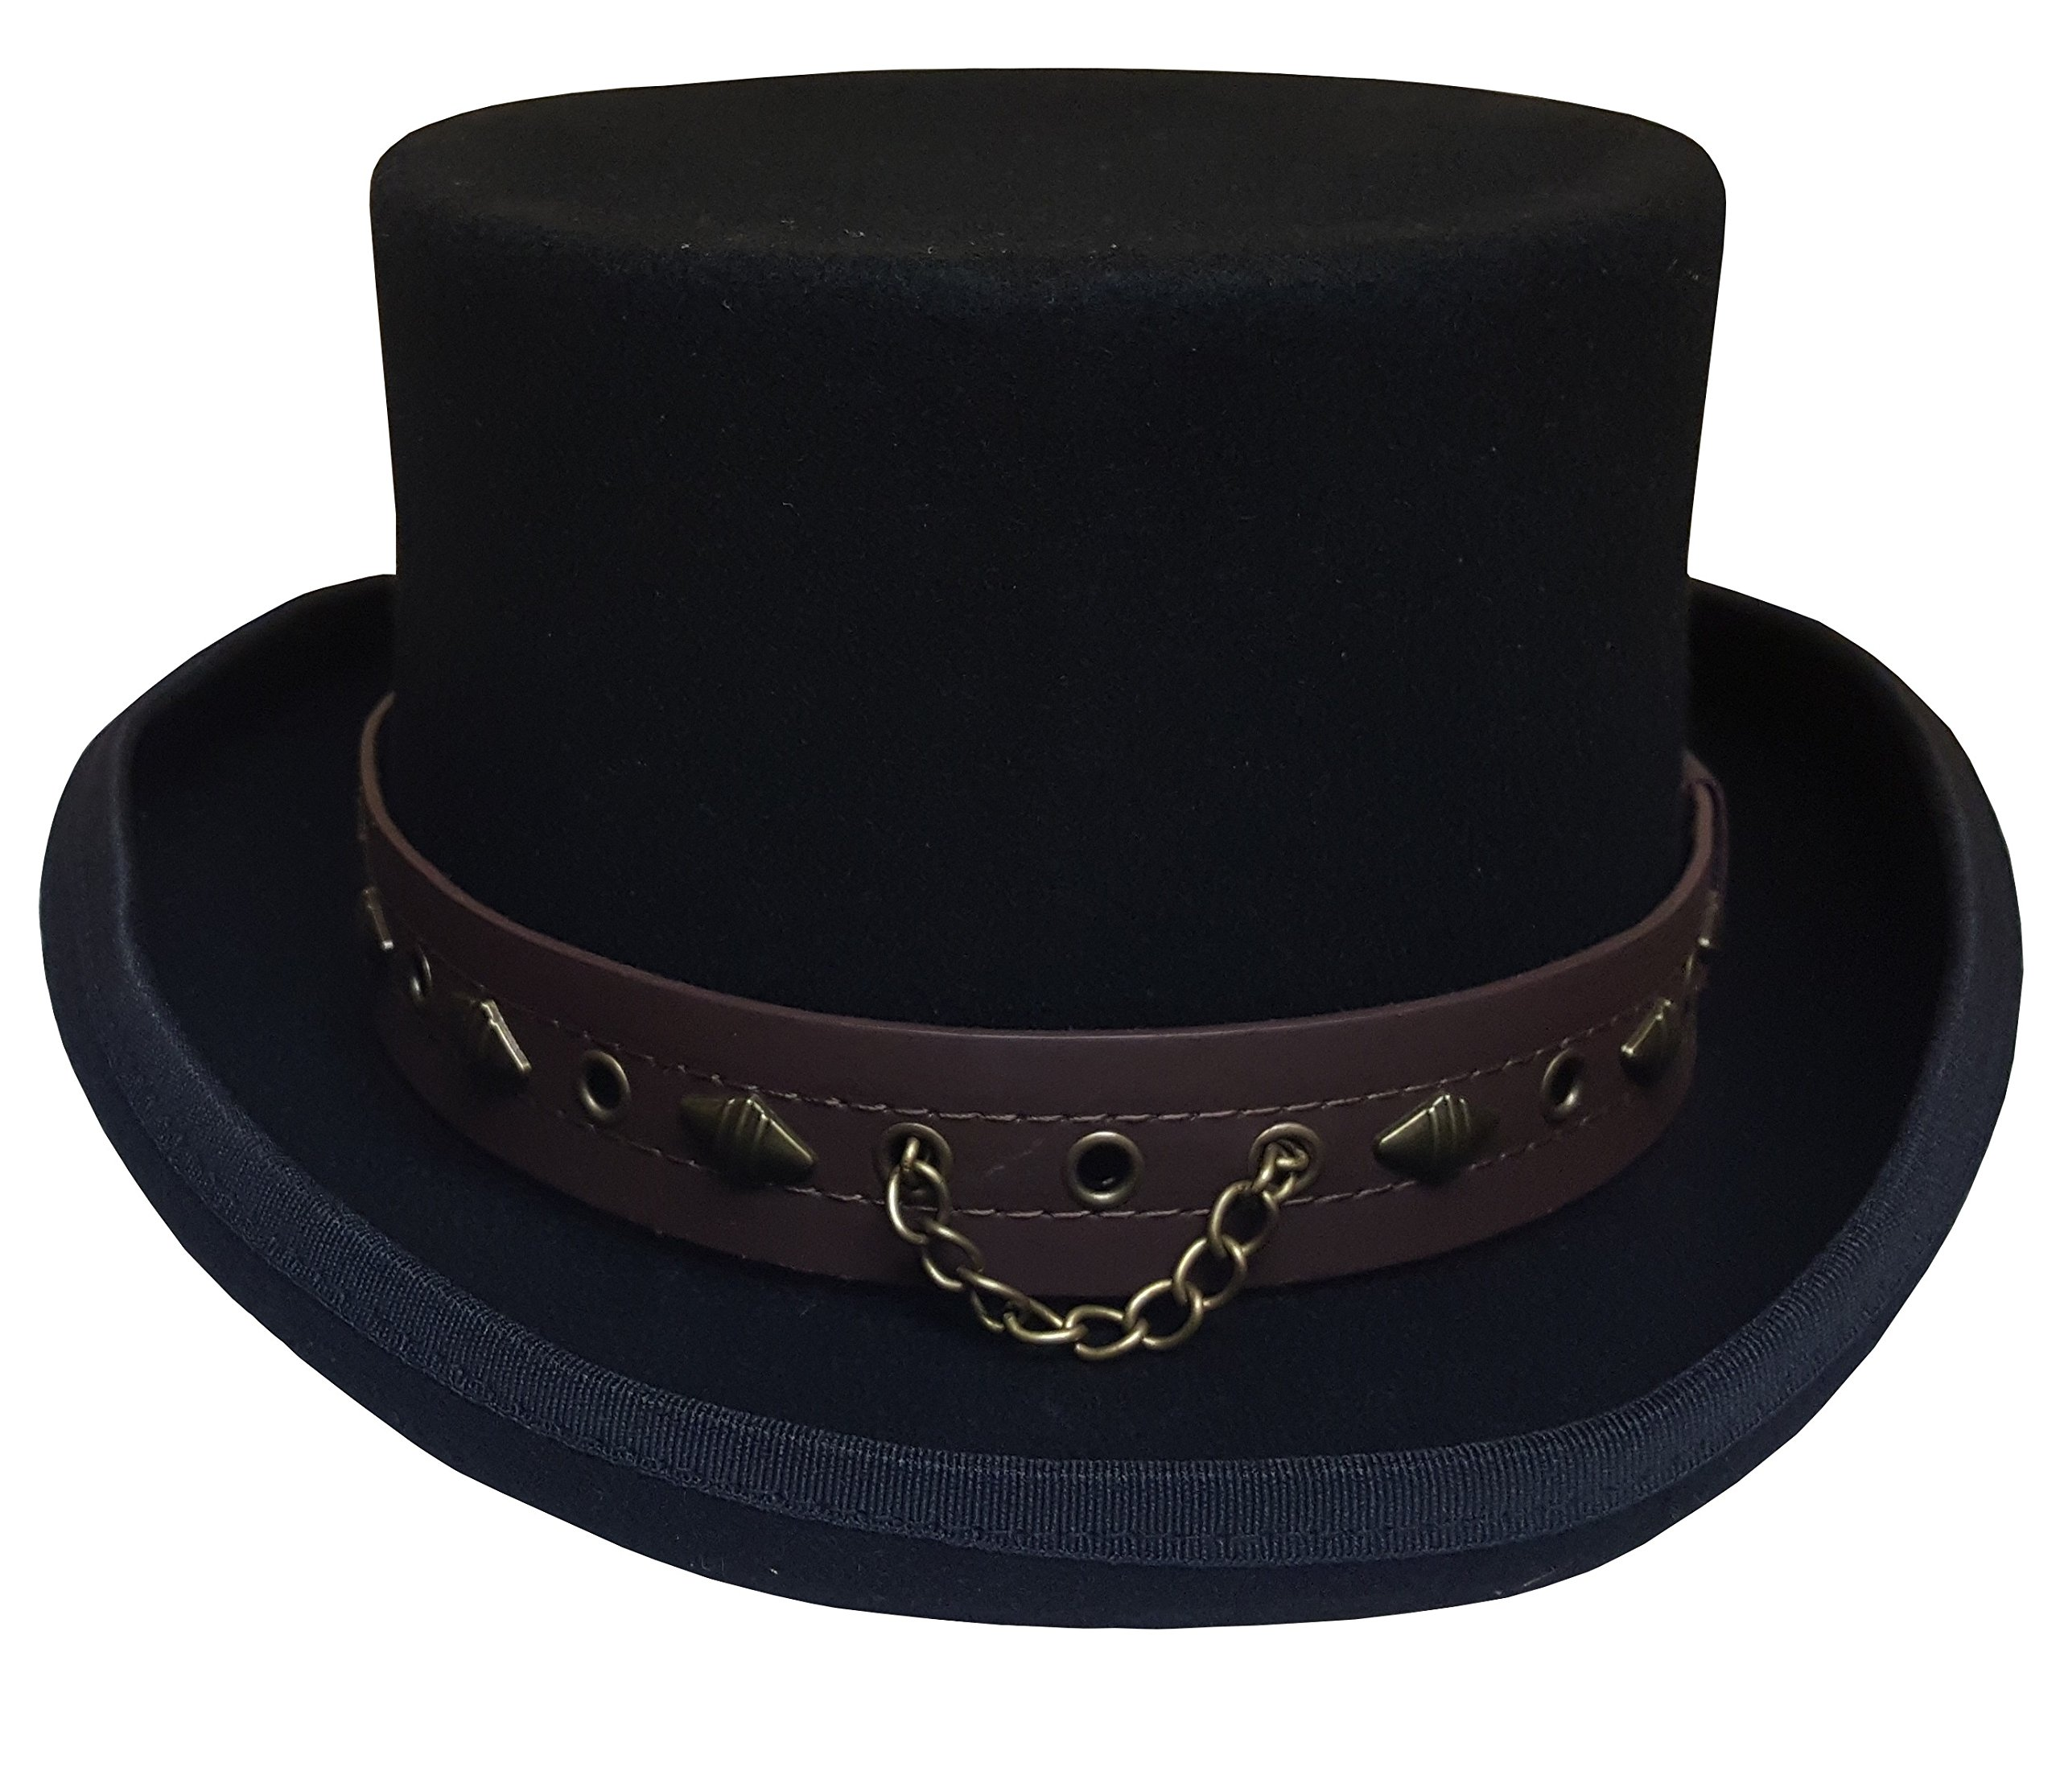 100% Wool Victorian Western Steampunk Costume Top Hat with Leather Band and Chain Black 3